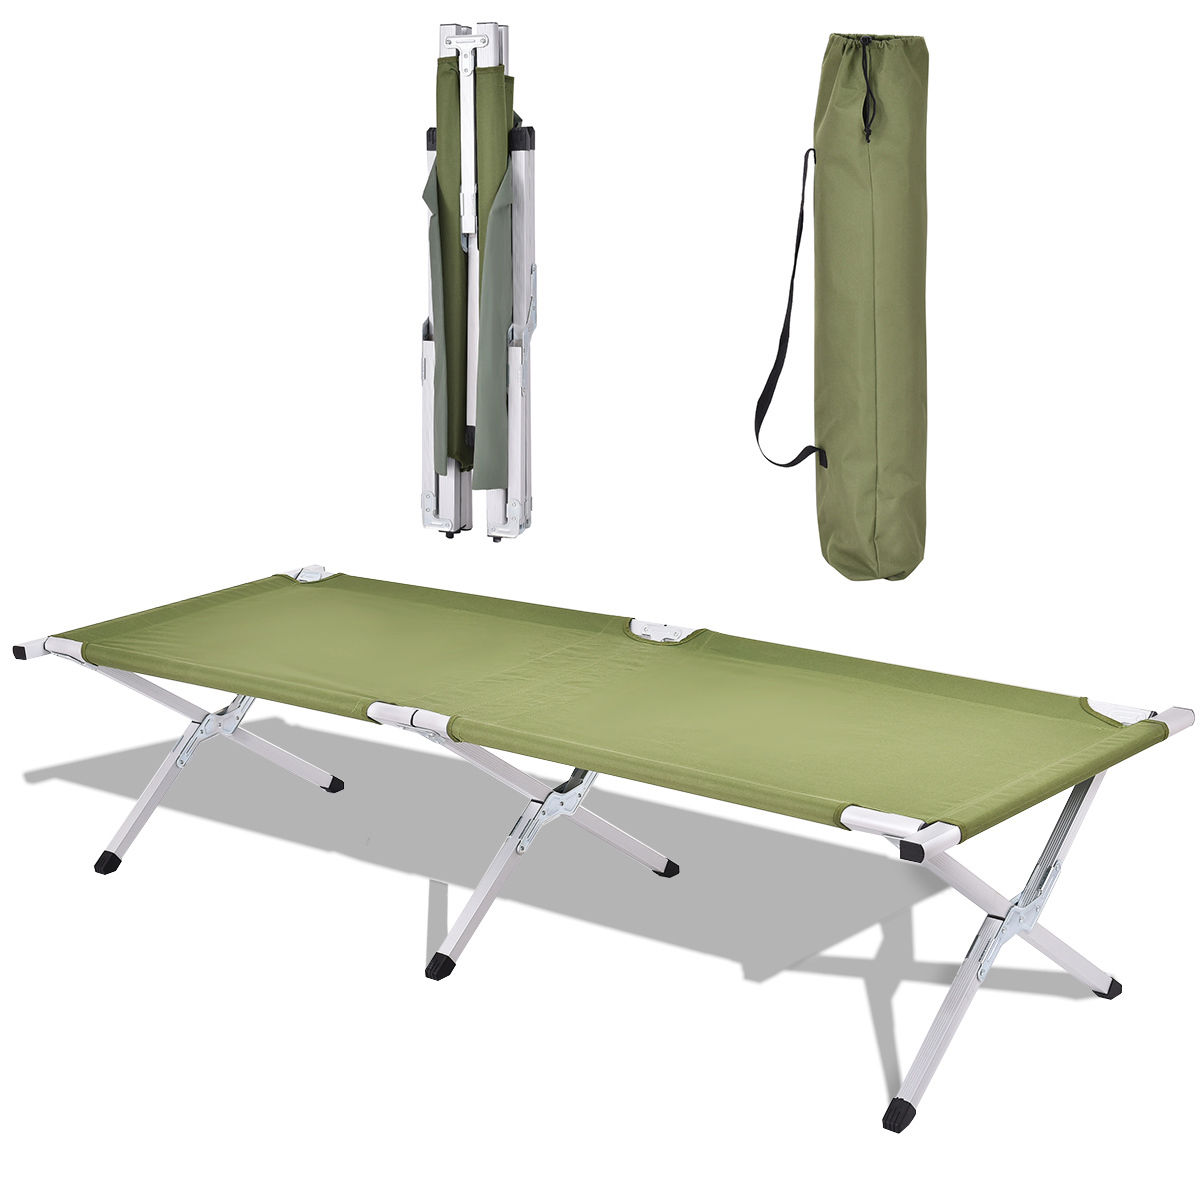 Costway Green Foldable Camping Bed Portable Military Cot Hiking Travel w  carrying Bag by Costway